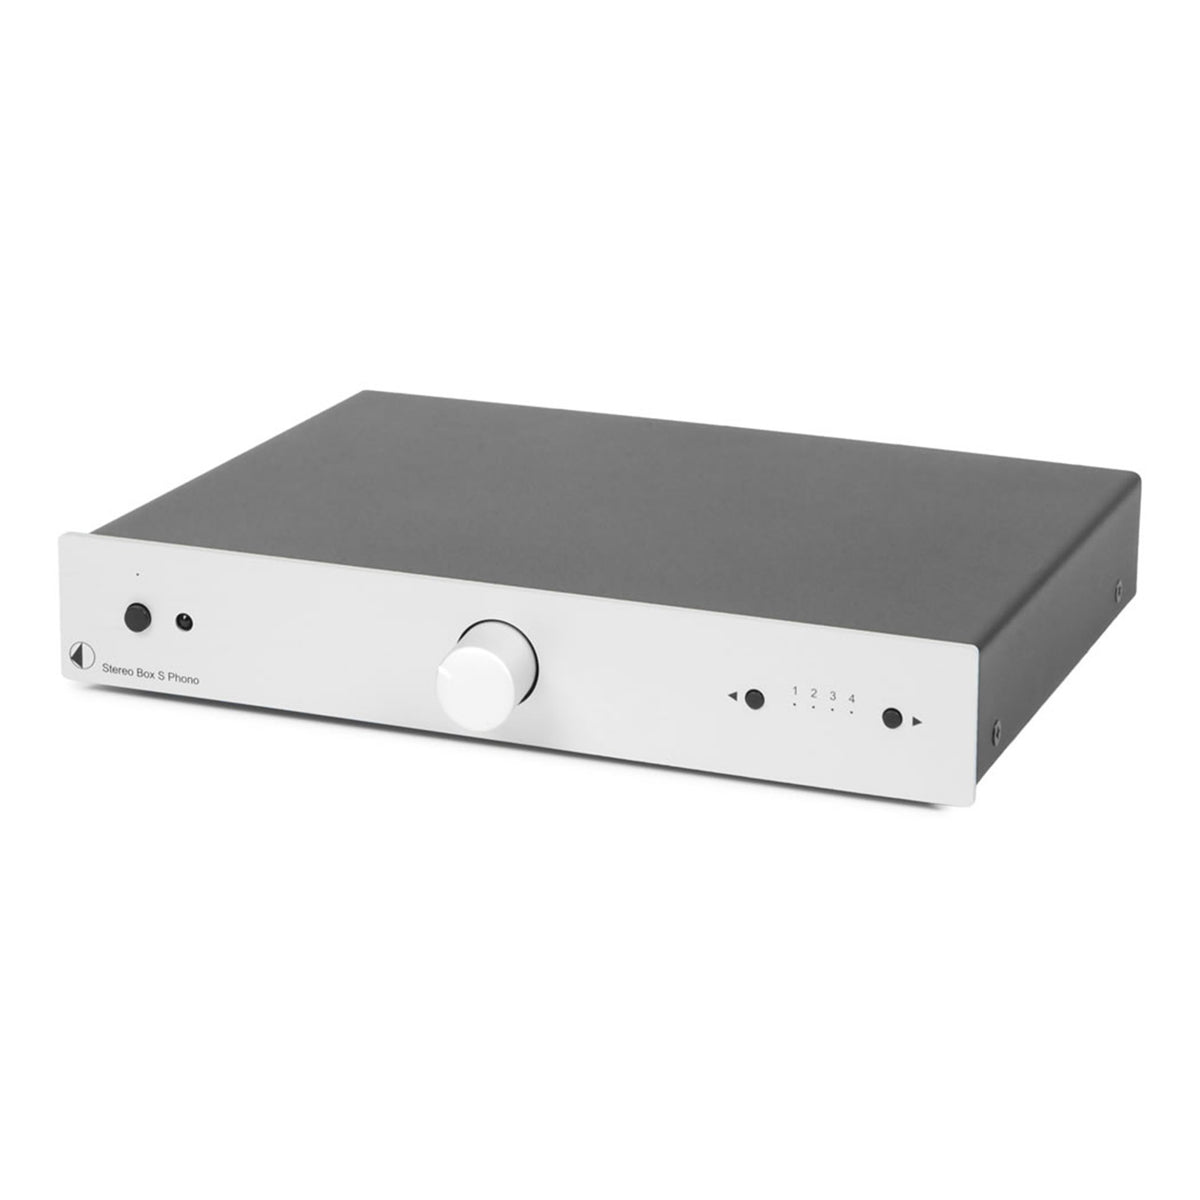 Pro-Ject: Stereo Box S Phono - Silver